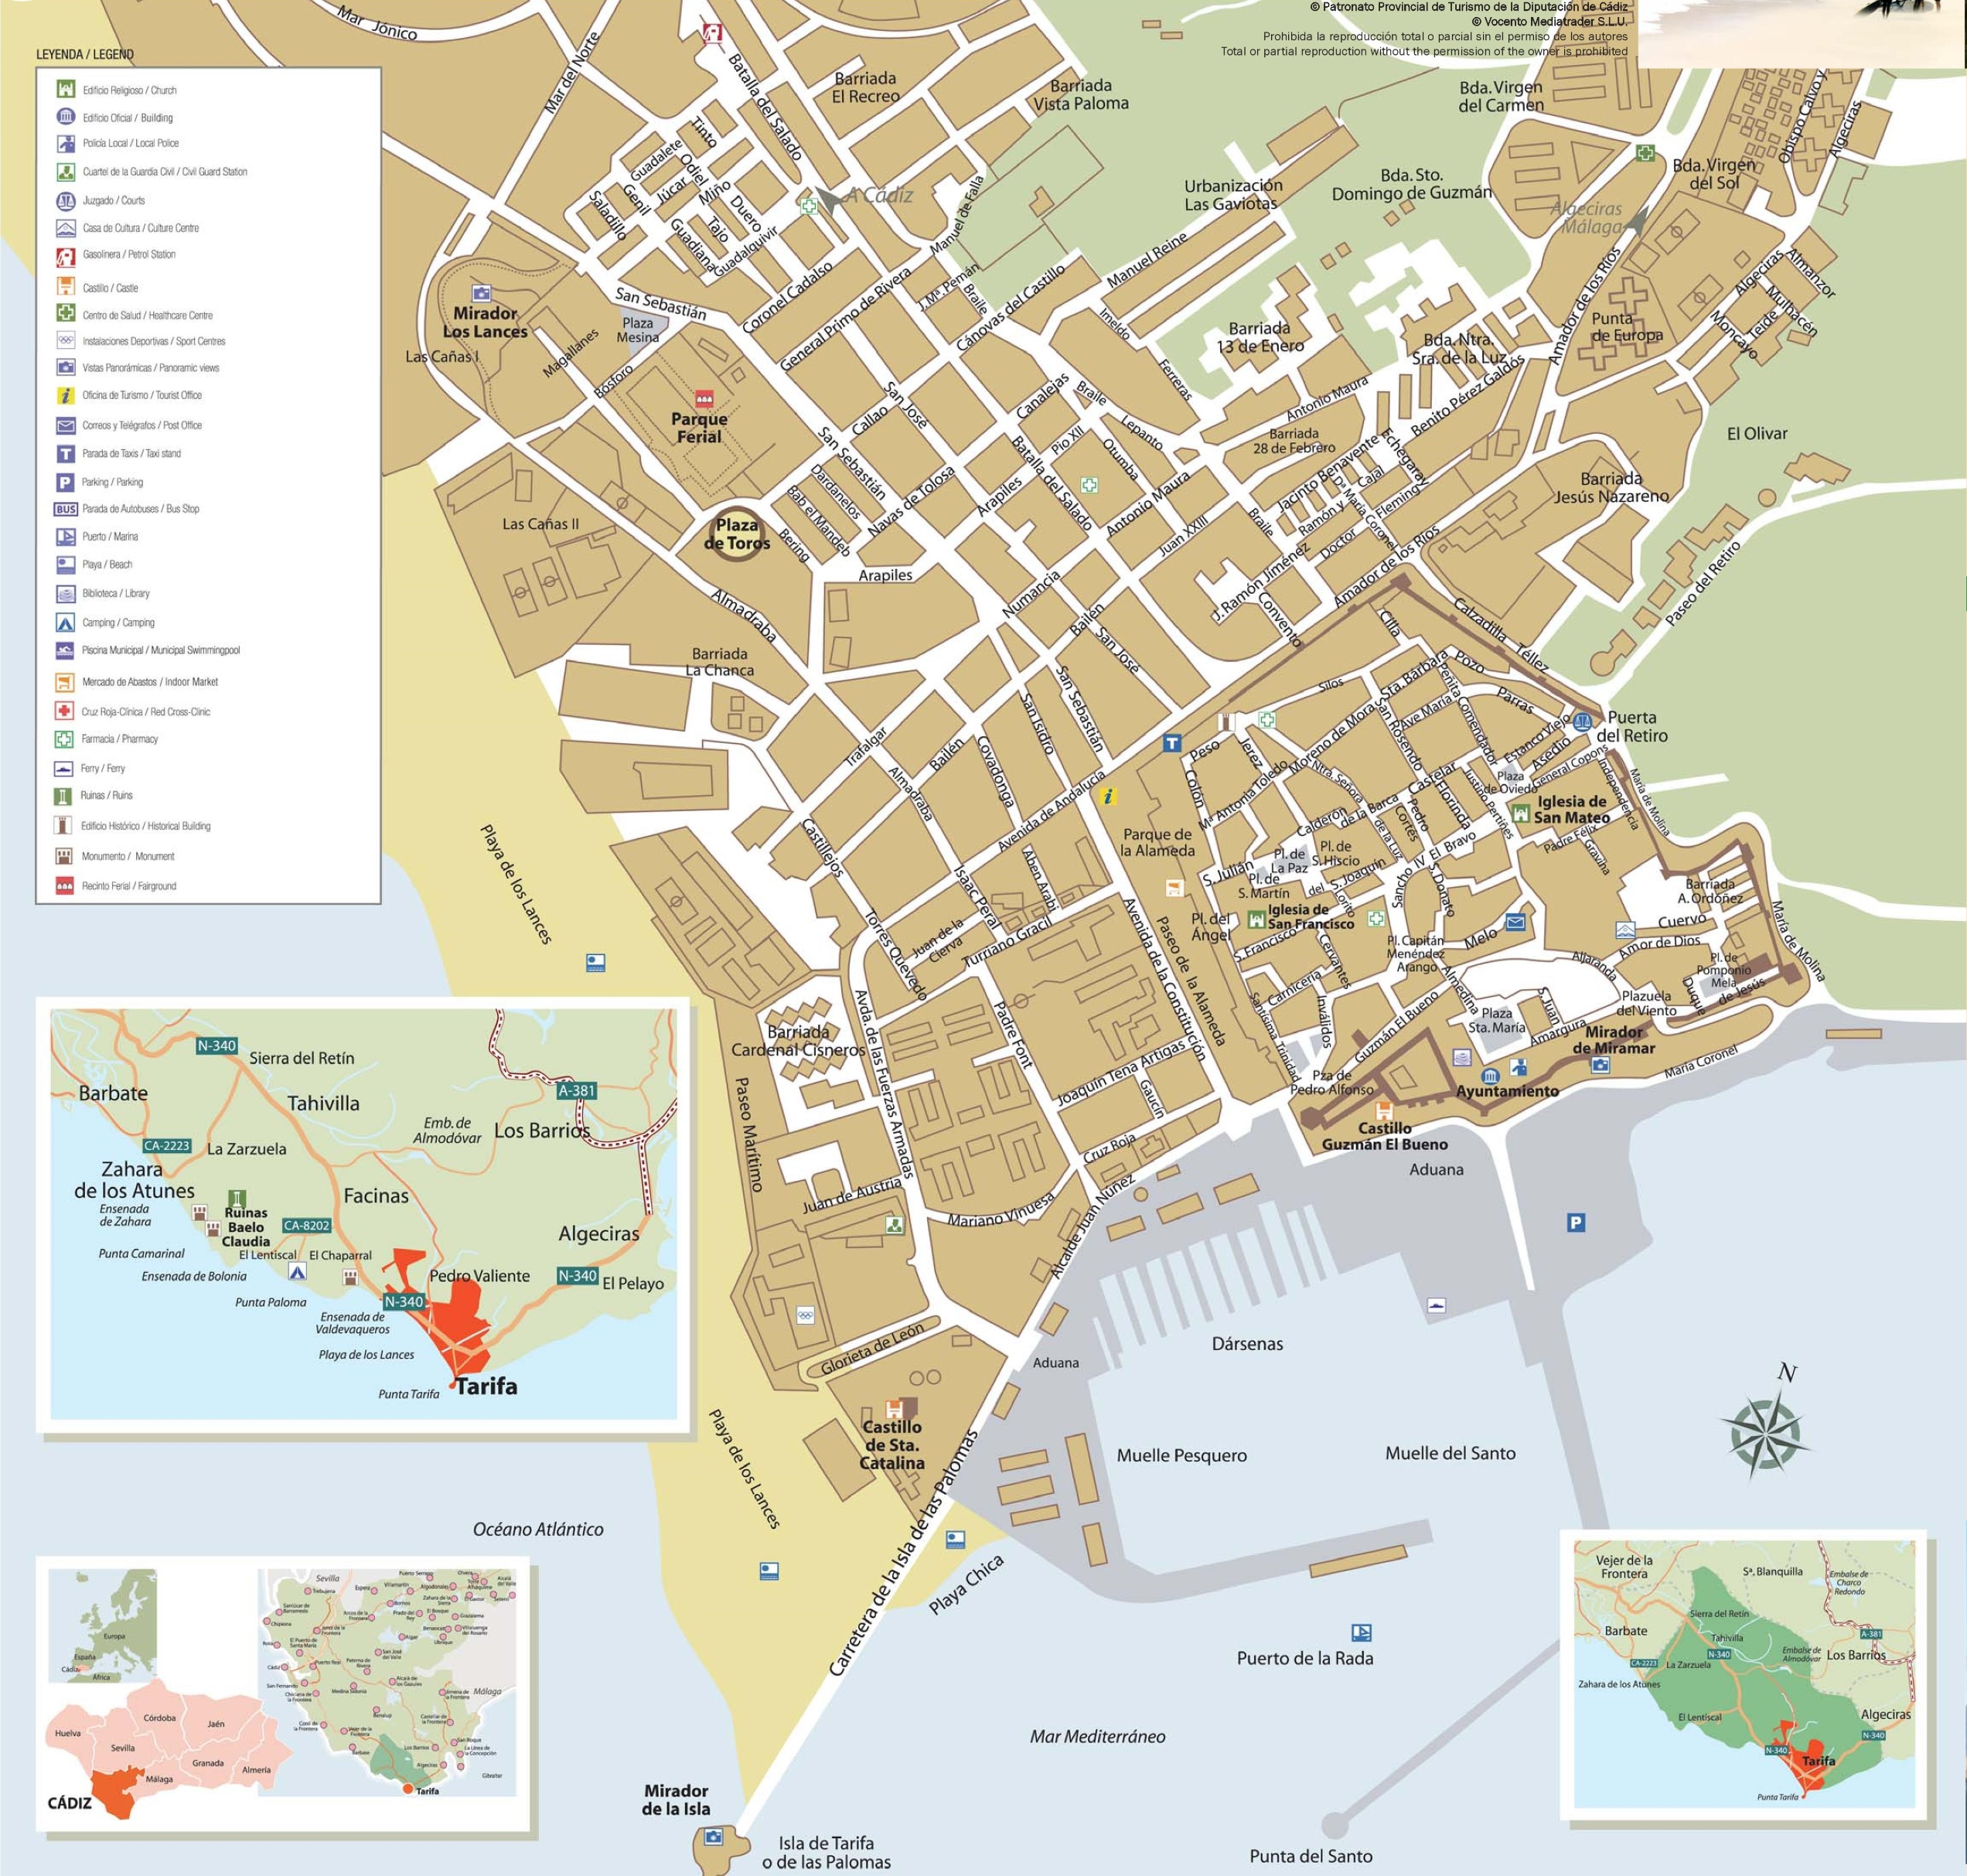 Tarifa tourist map